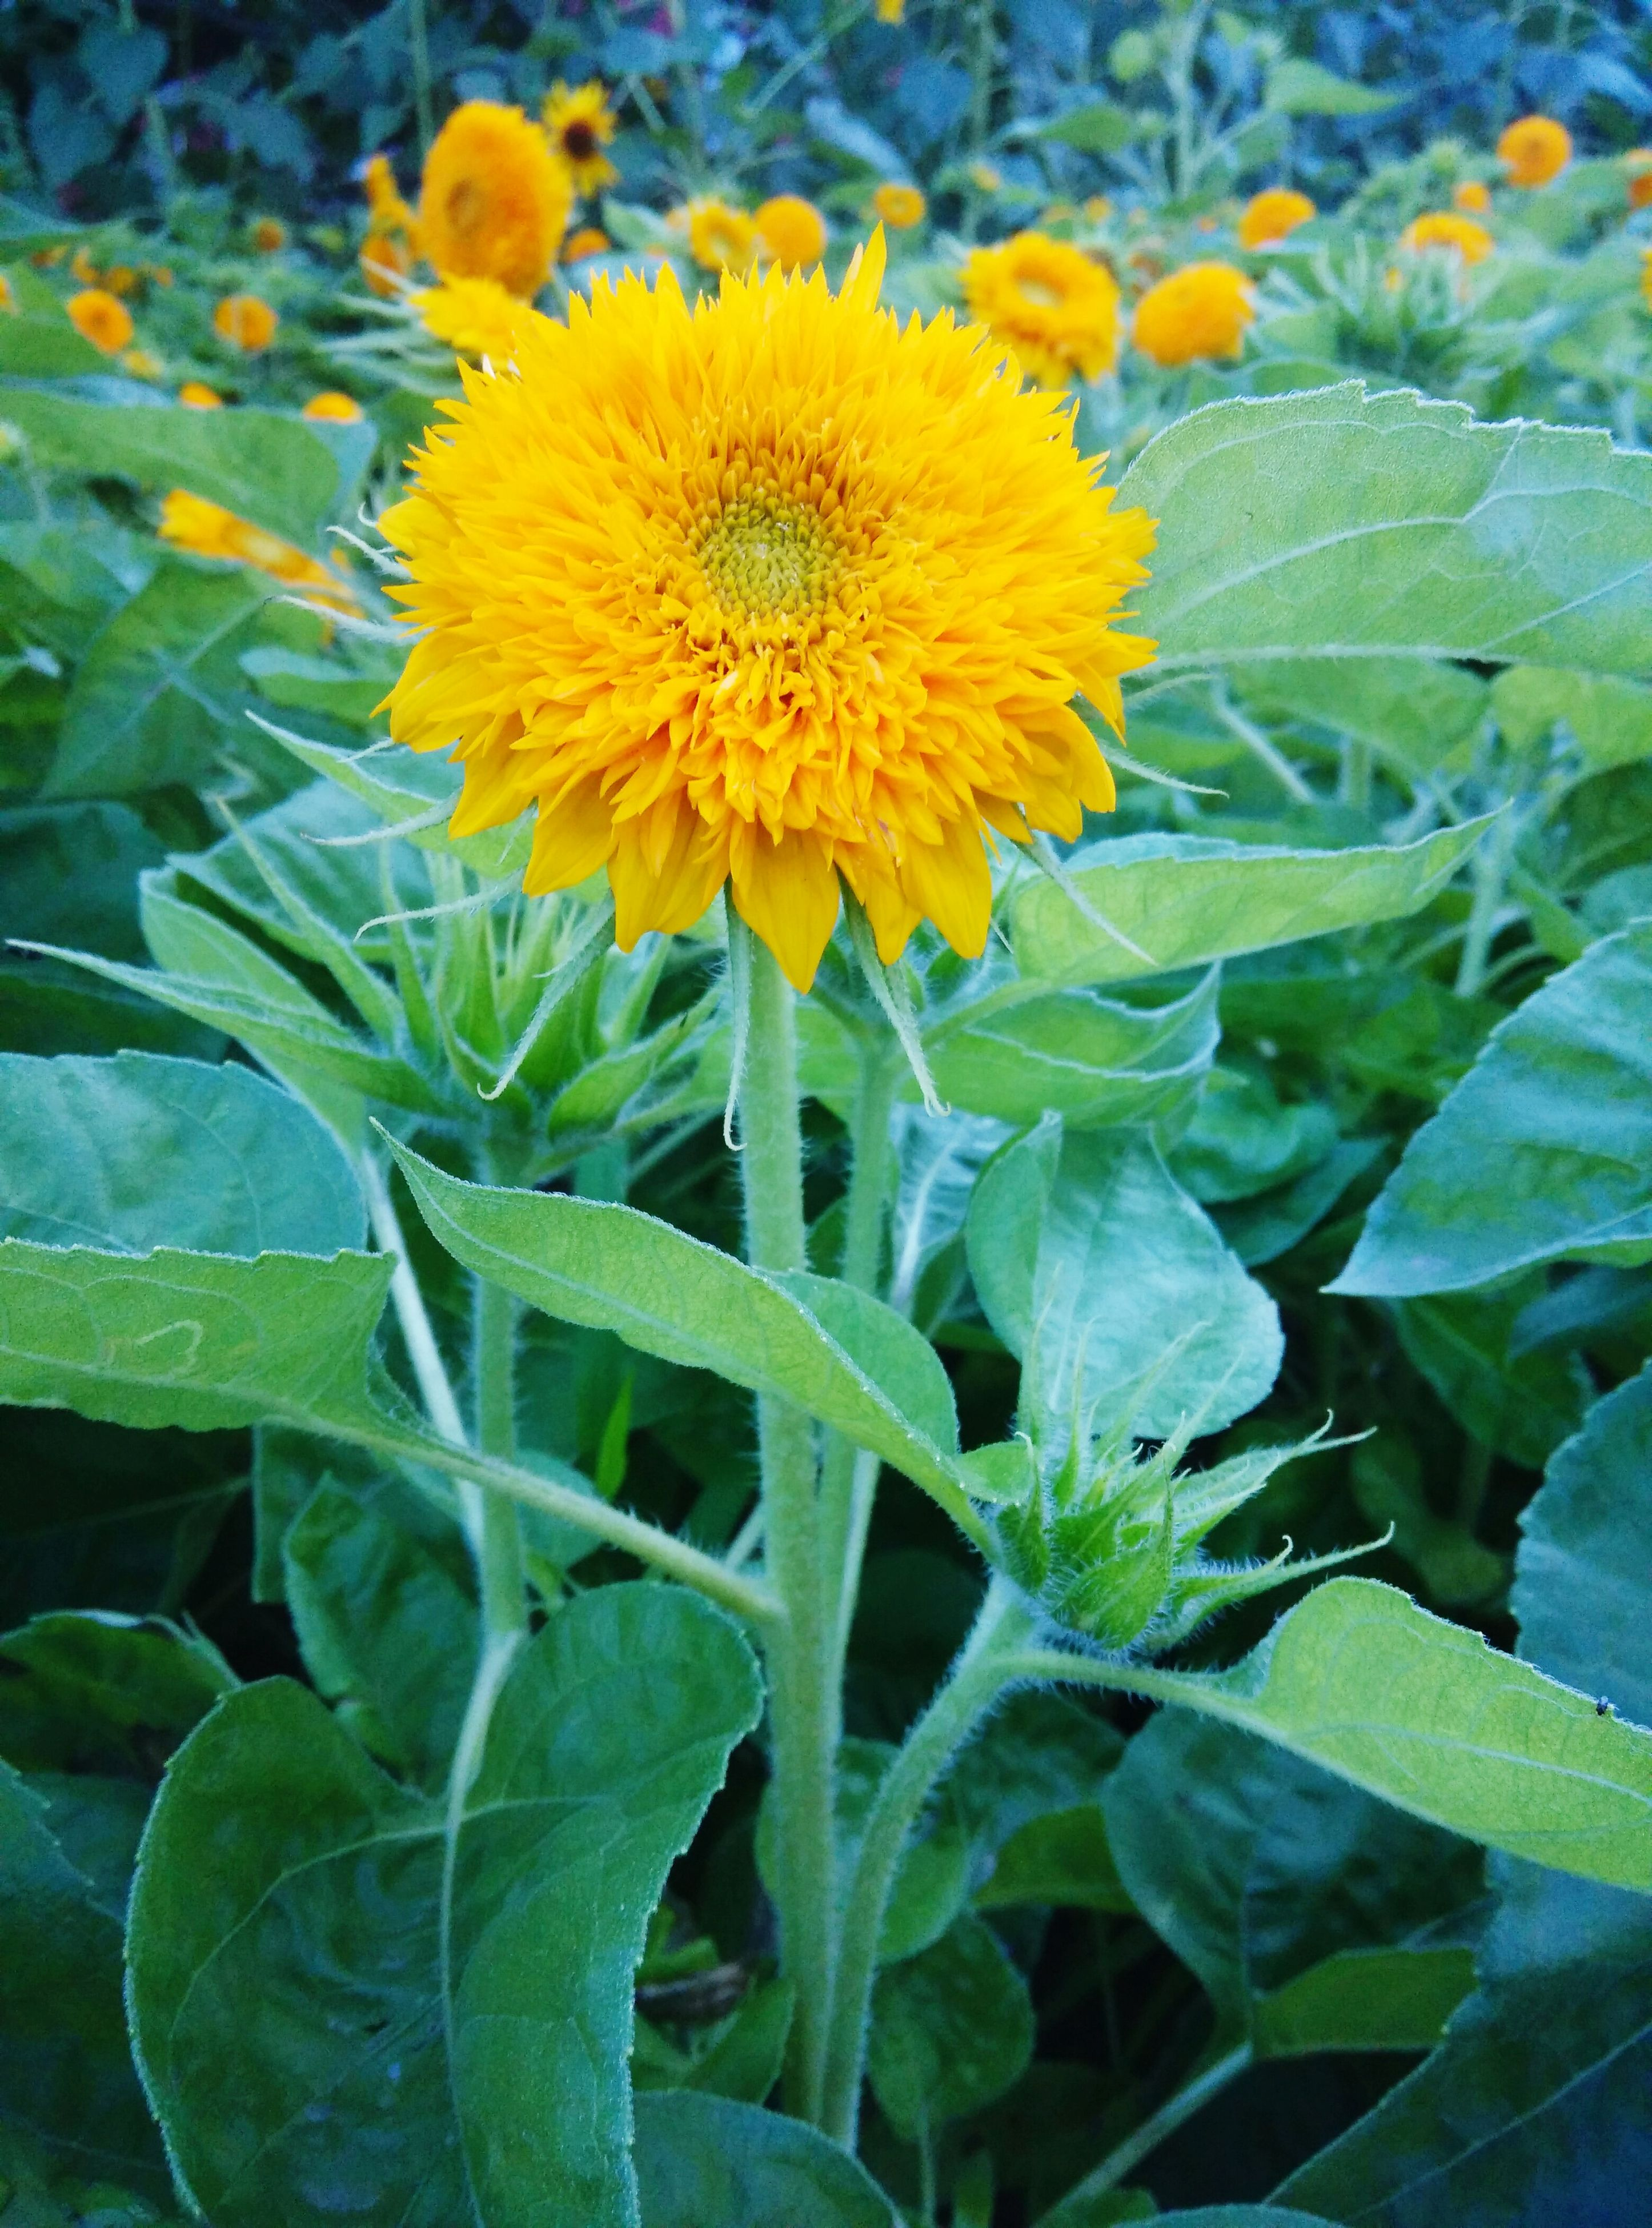 flower, freshness, fragility, petal, growth, yellow, flower head, leaf, beauty in nature, plant, blooming, nature, green color, close-up, in bloom, sunflower, stem, blossom, field, focus on foreground